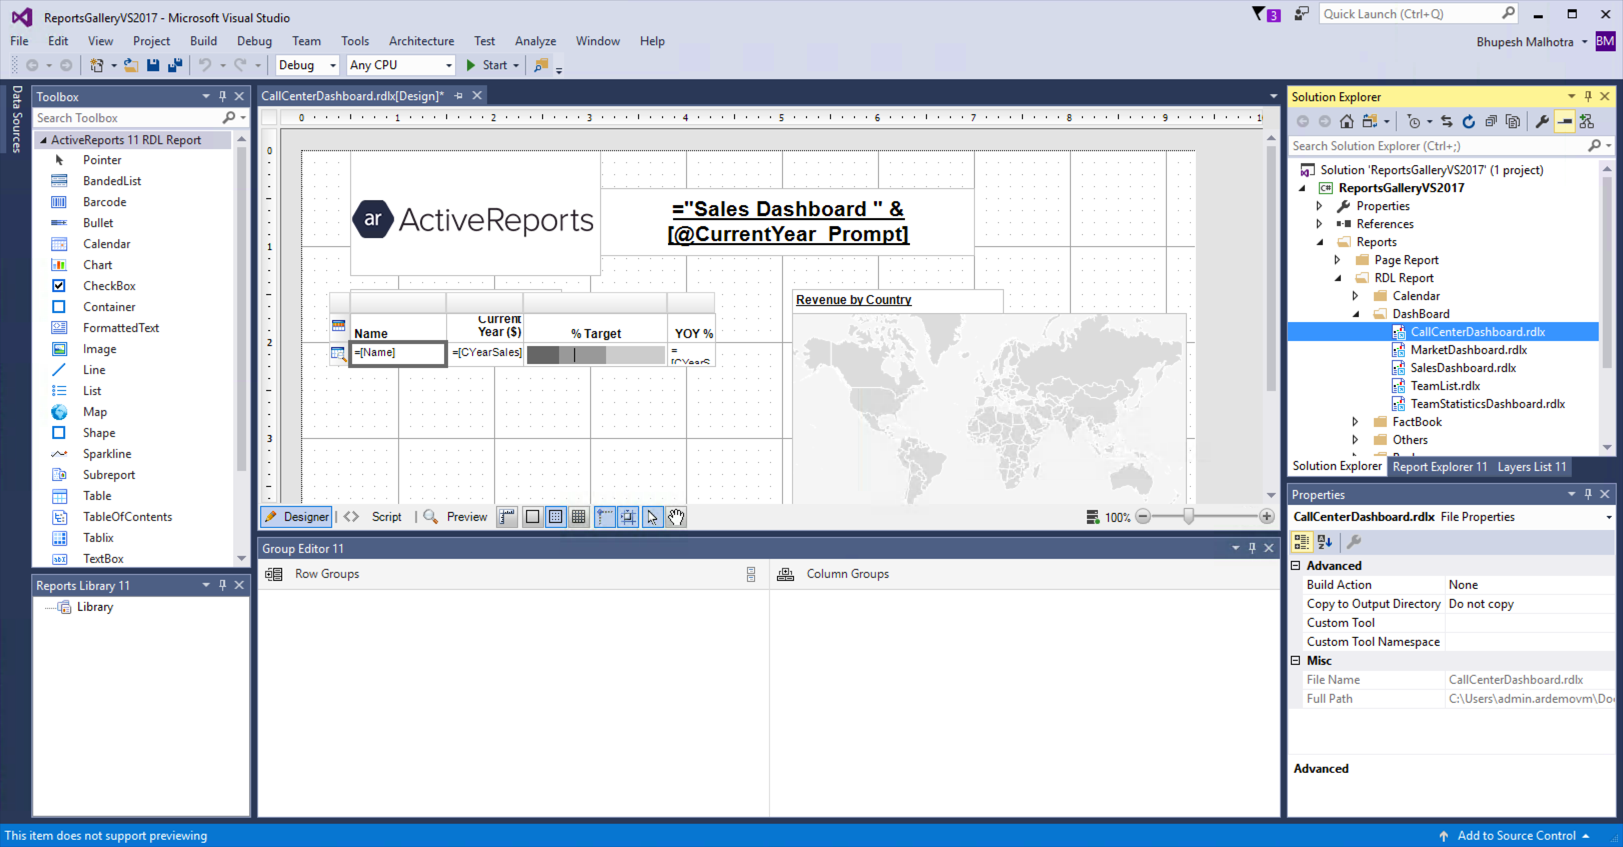 ActiveReports in the Visual Studio 2017 IDE